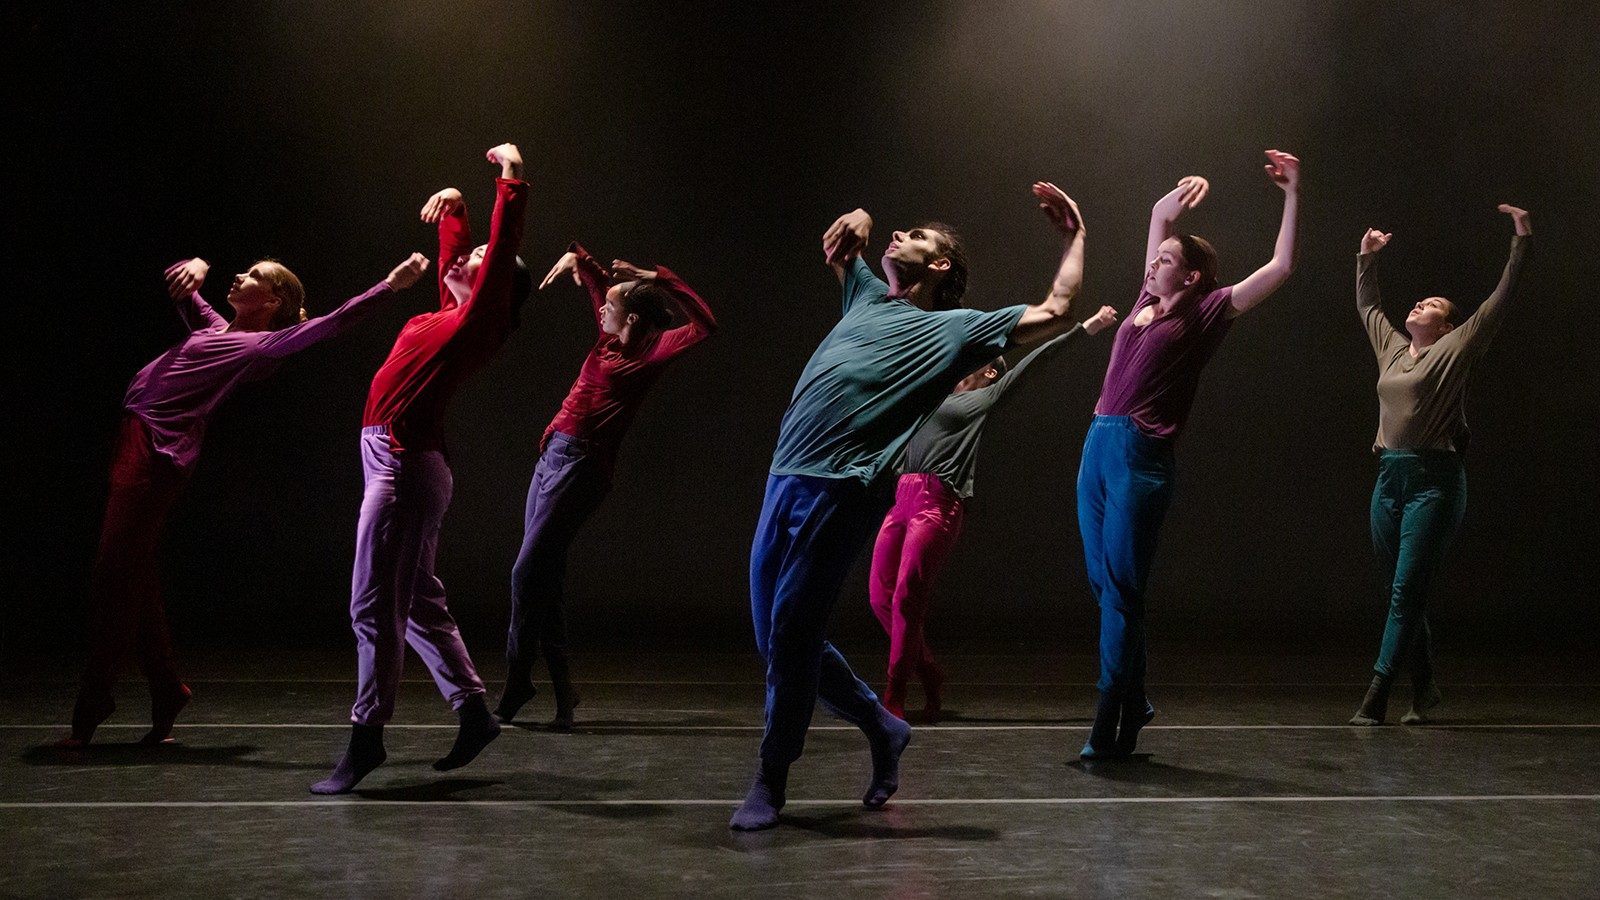 A group of dancers in multicolored clothing.